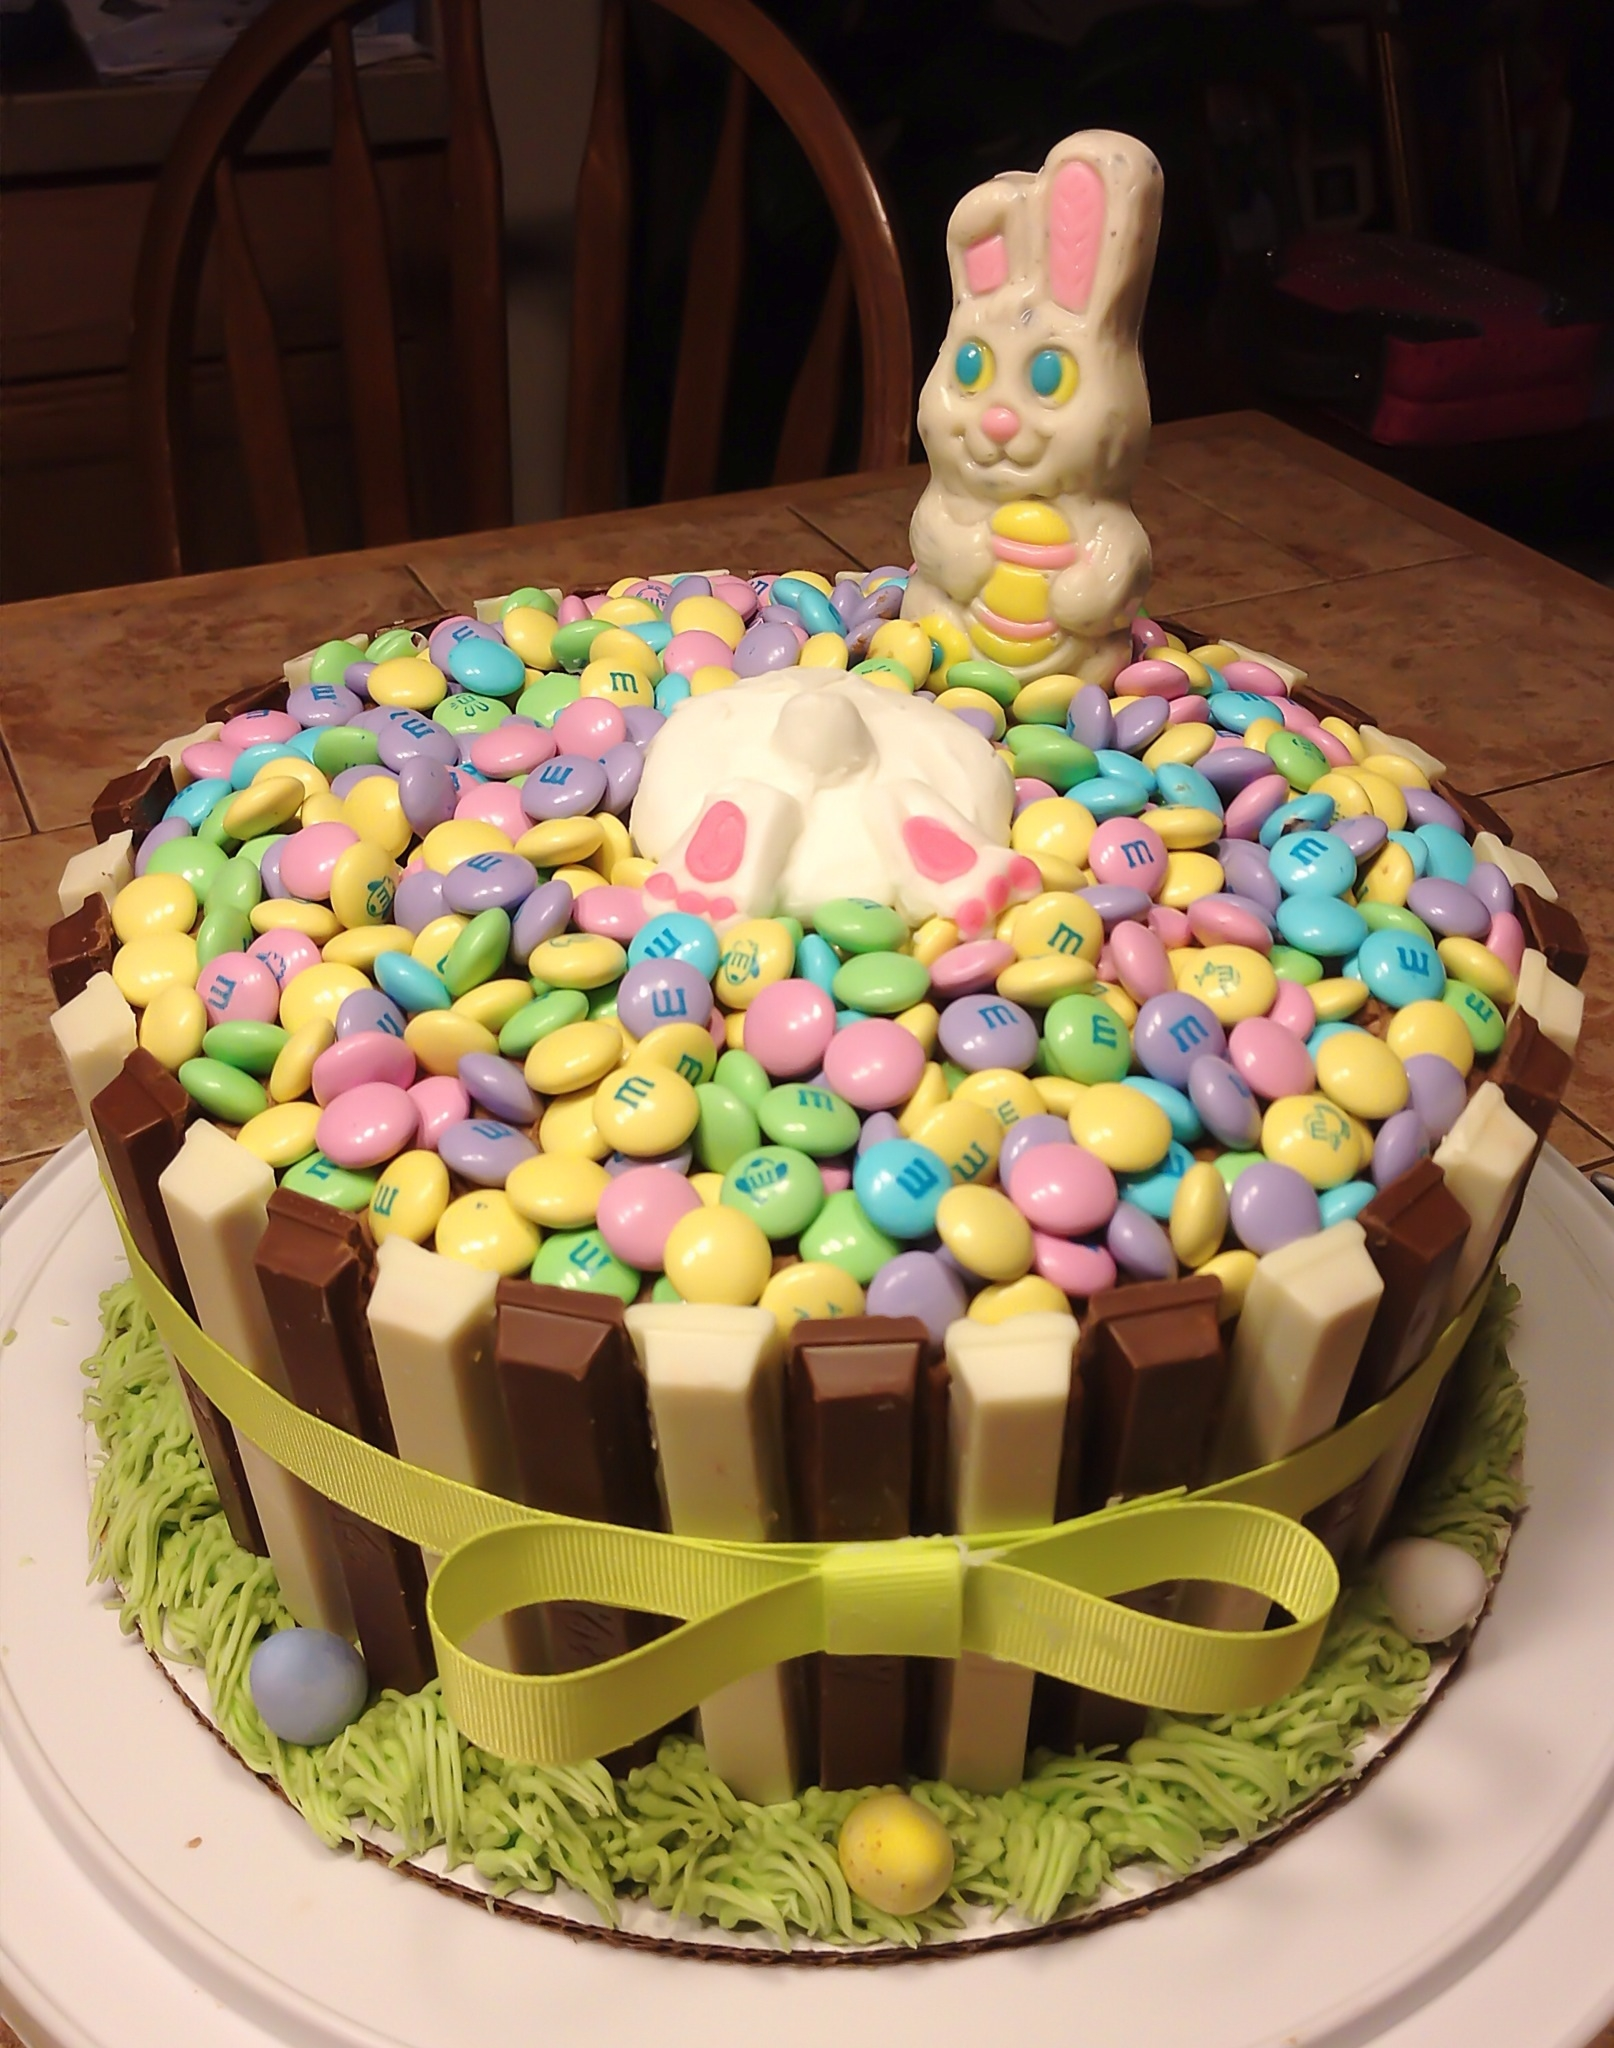 Easter basket cake ideas counter christmas photo easter basket cake ideas negle Gallery